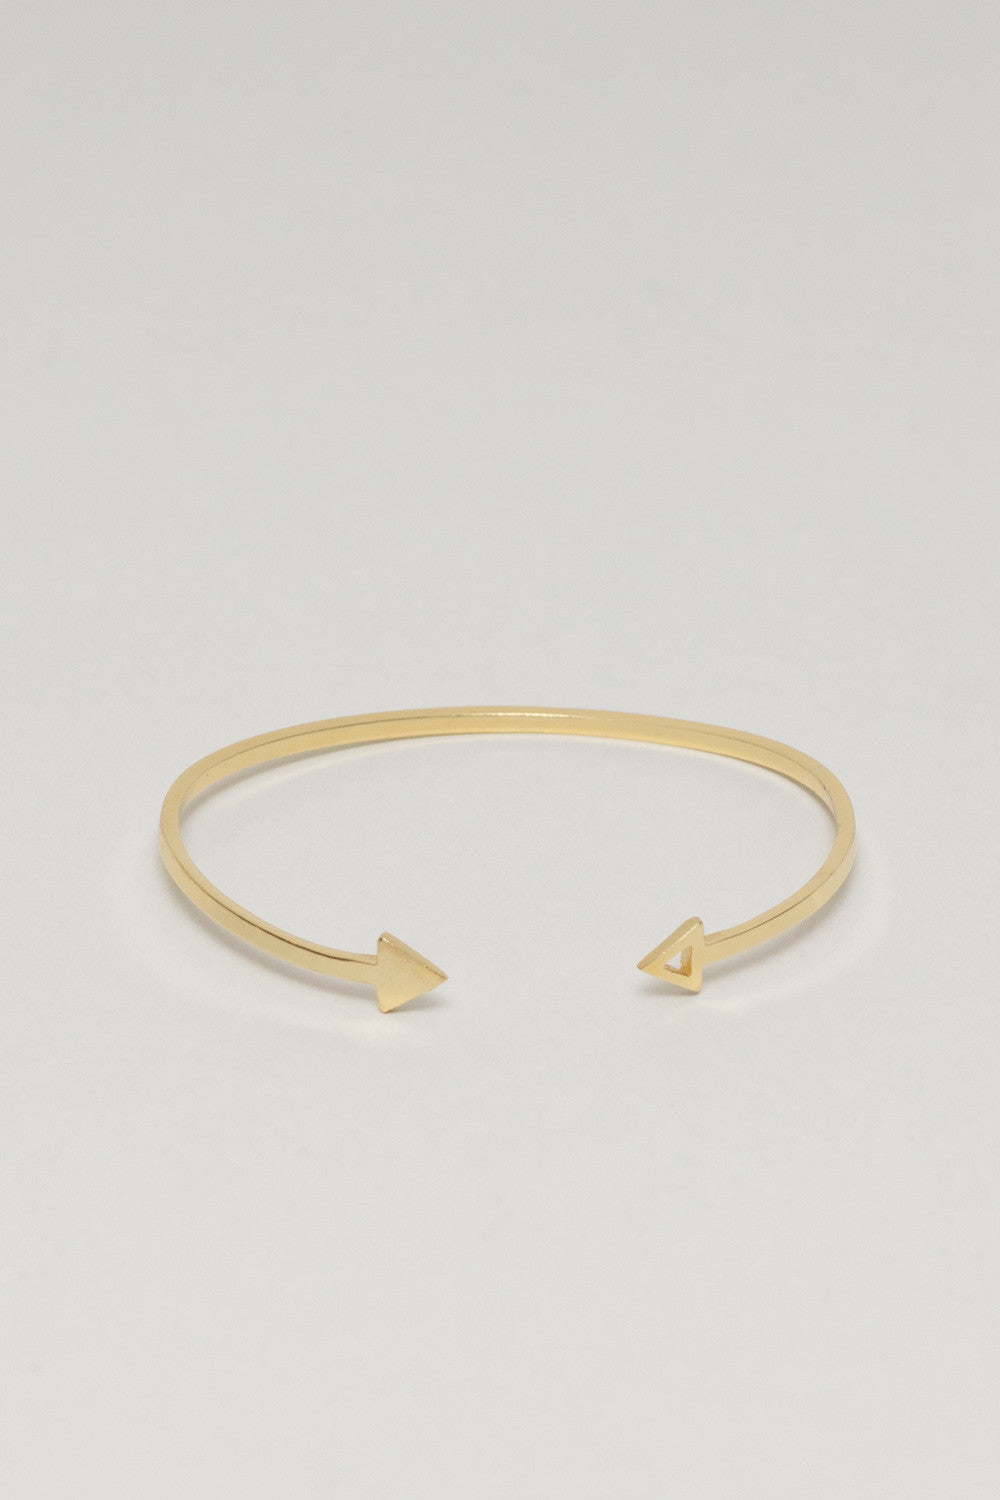 MARIA KARKANTZOU - ARROWS CUFF BRACELET - Jewellery - Ozon Boutique - 5